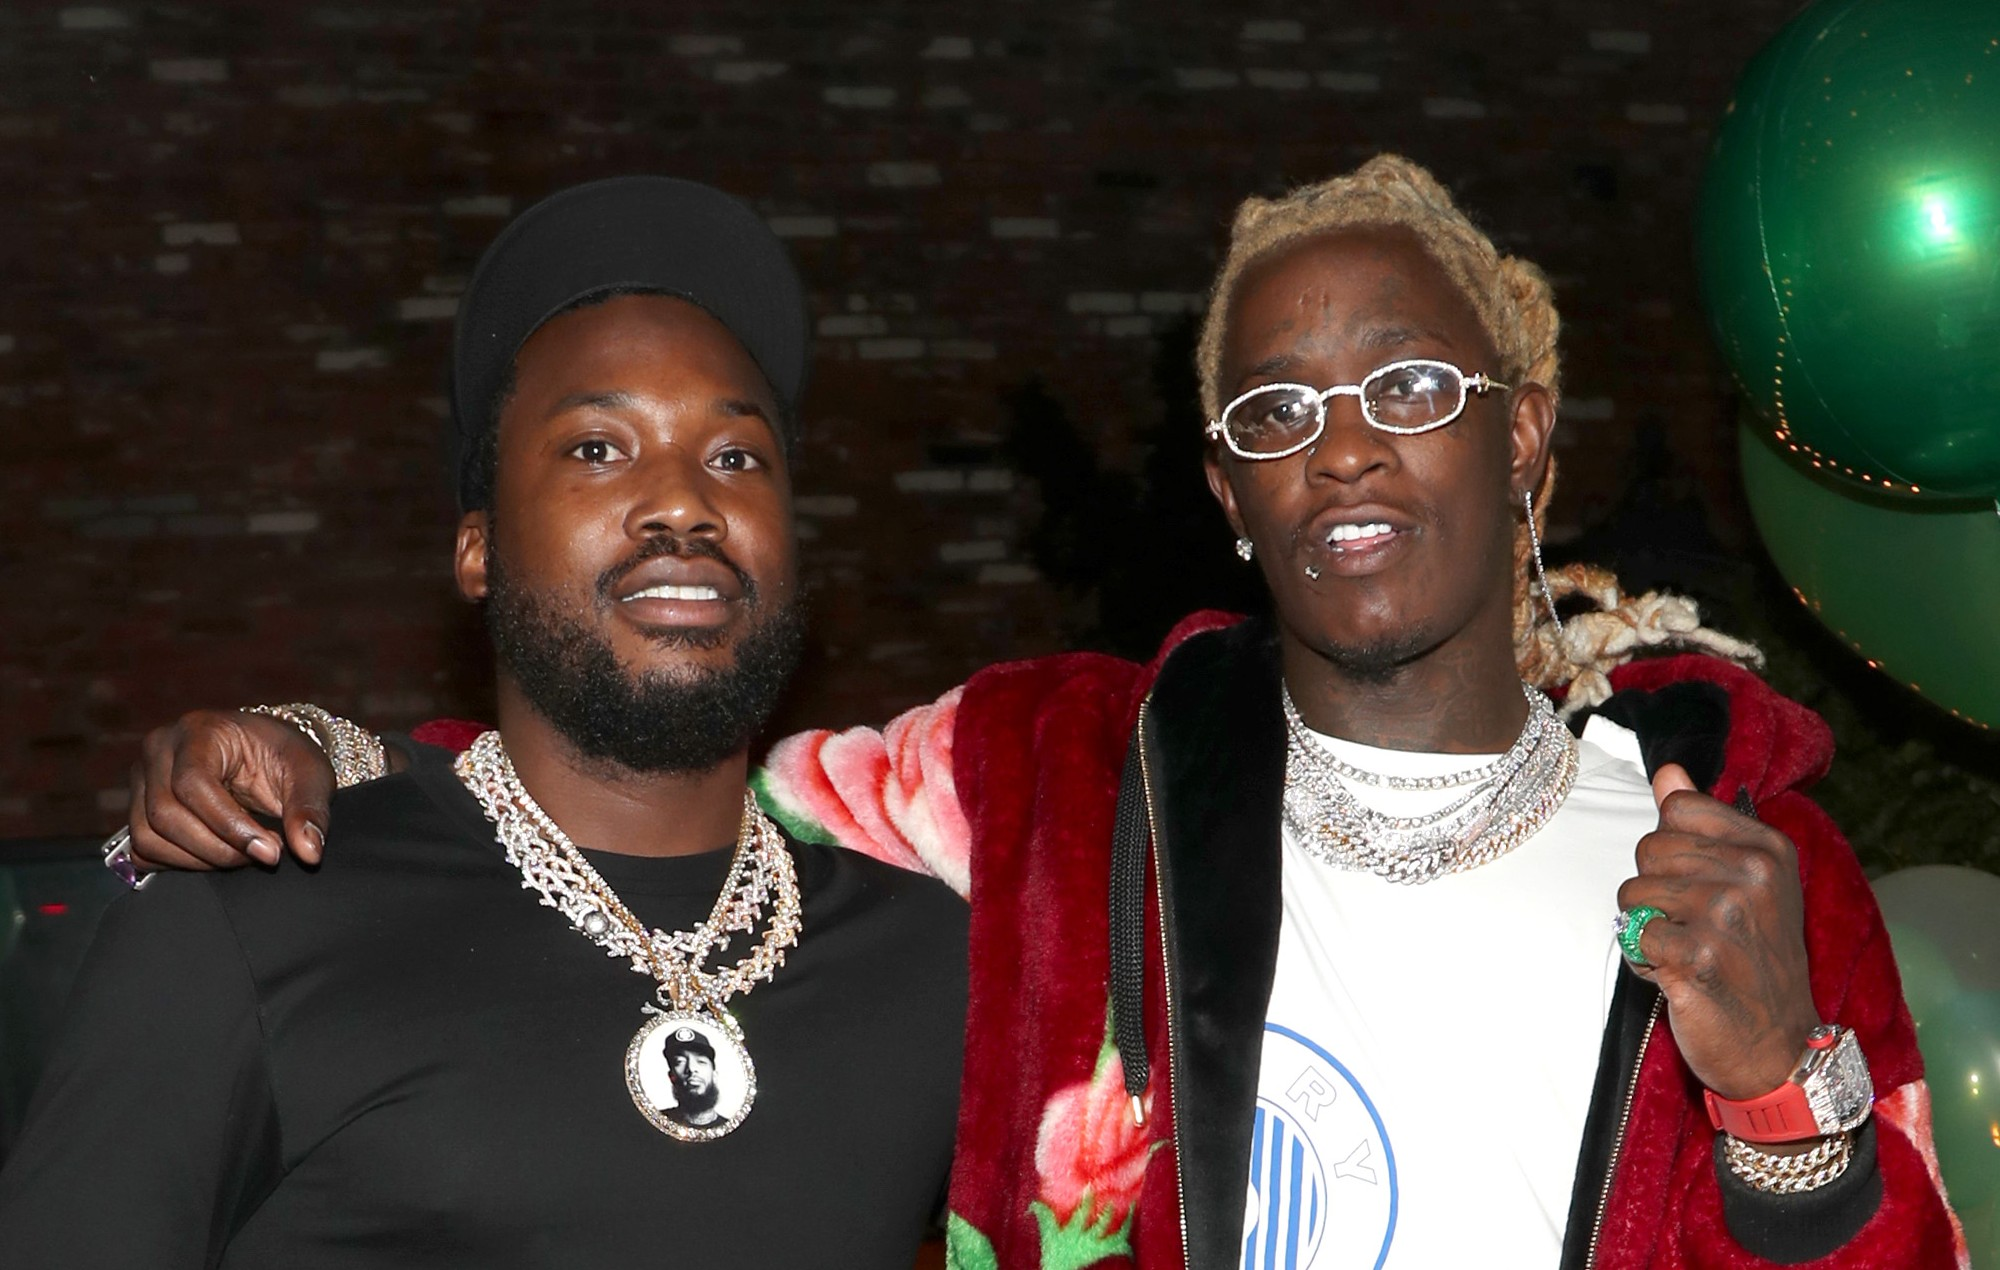 Listen to Young Thug and Meek Mill team up on 'That Go'